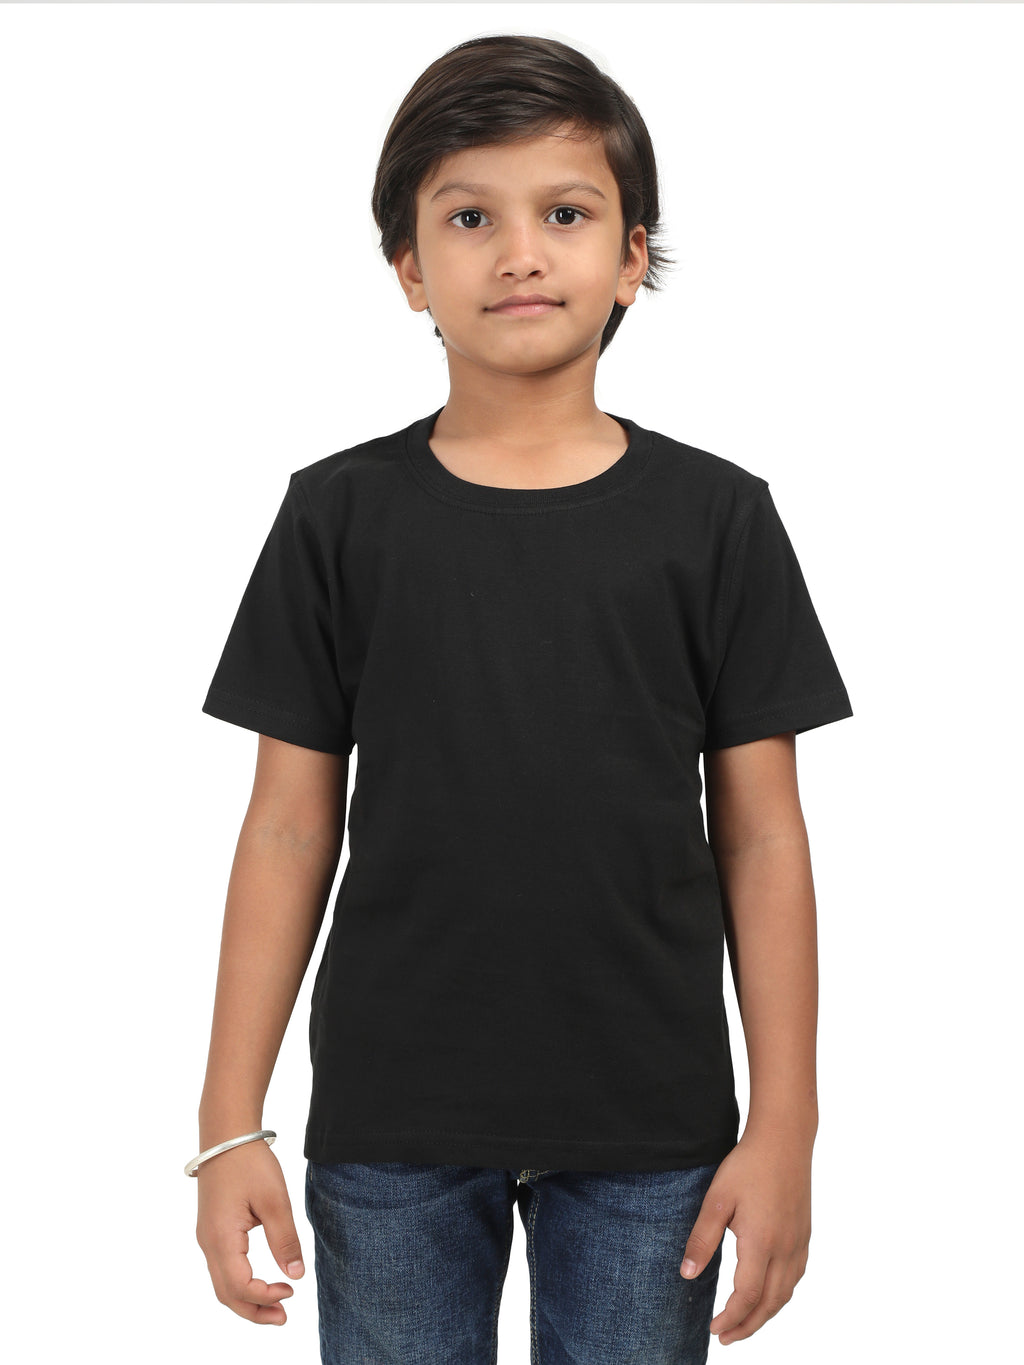 Solids: Plain Black Kids Tshirt